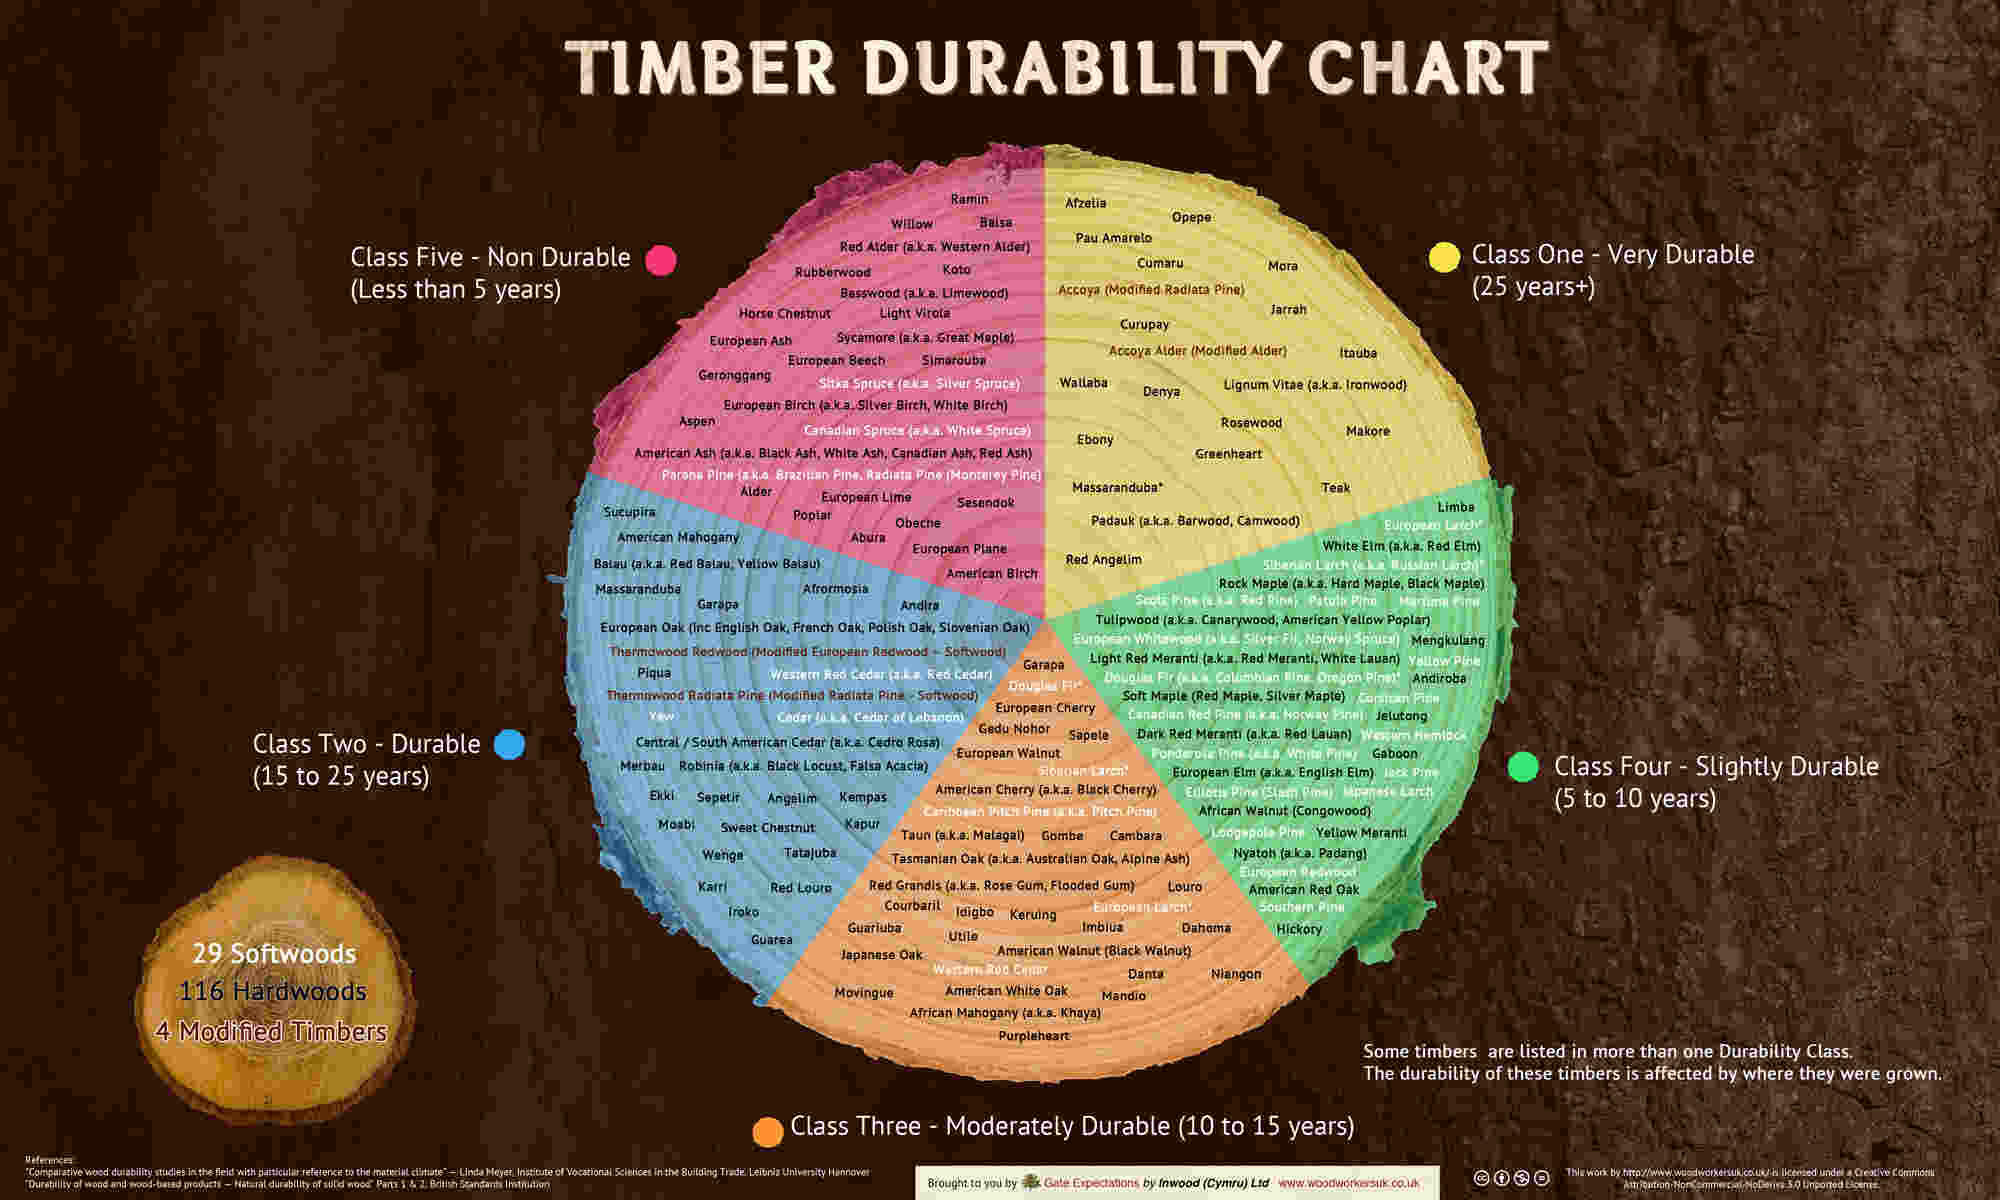 Timber Durability Chart showing how long timber lasts and highlighting timber that is good for window construction